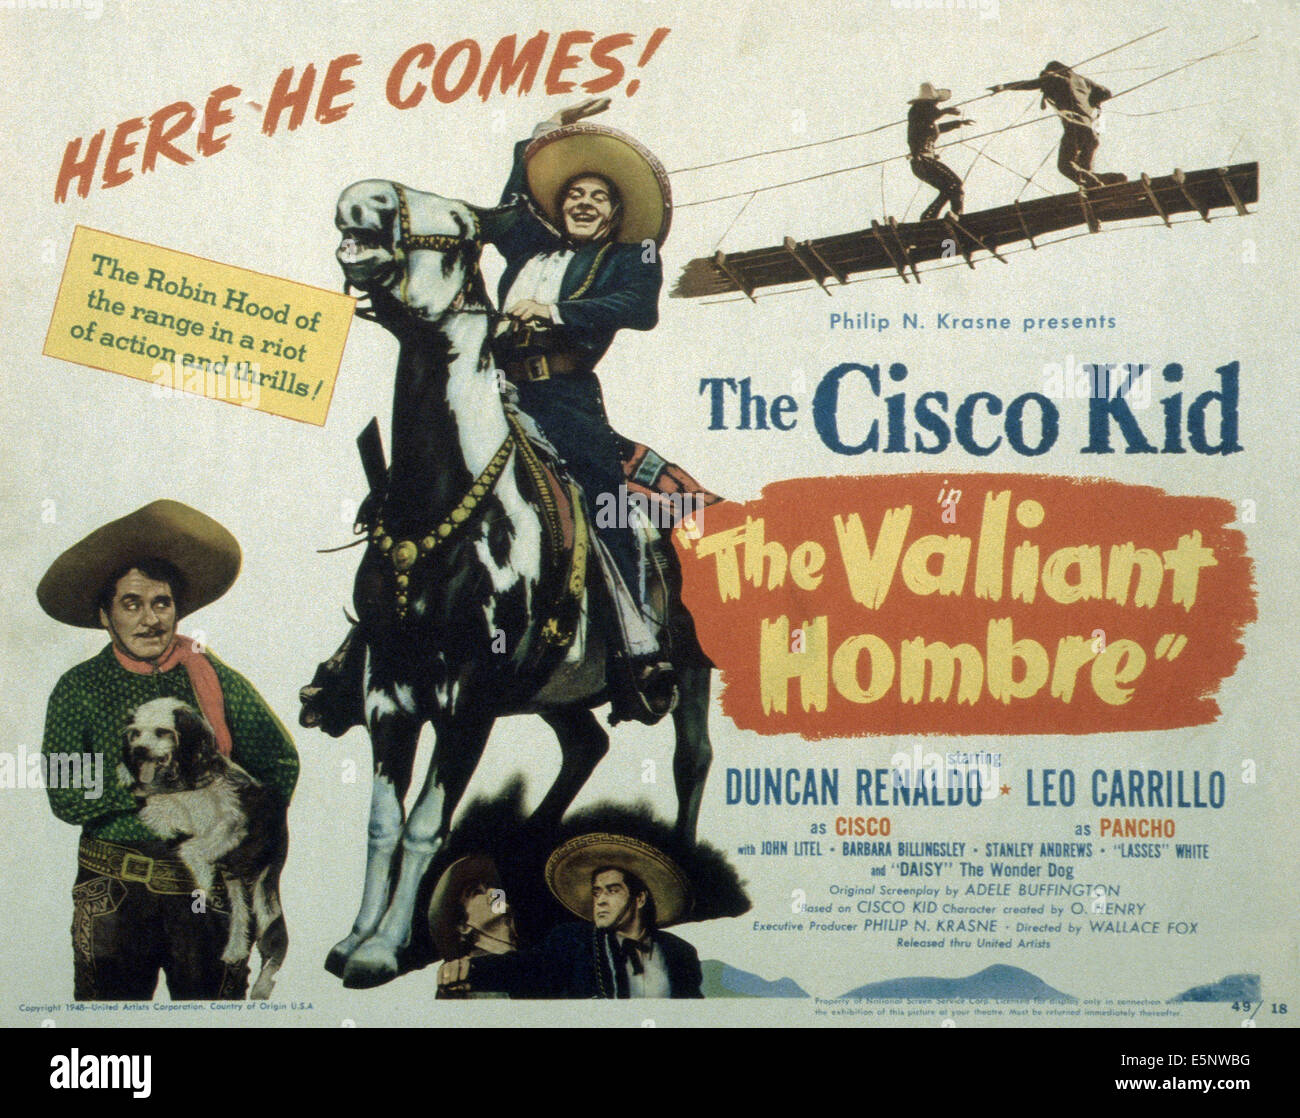 THE VALIANT HOMBRE US Poster Leo Carrillo With Dog Duncan Renaldo